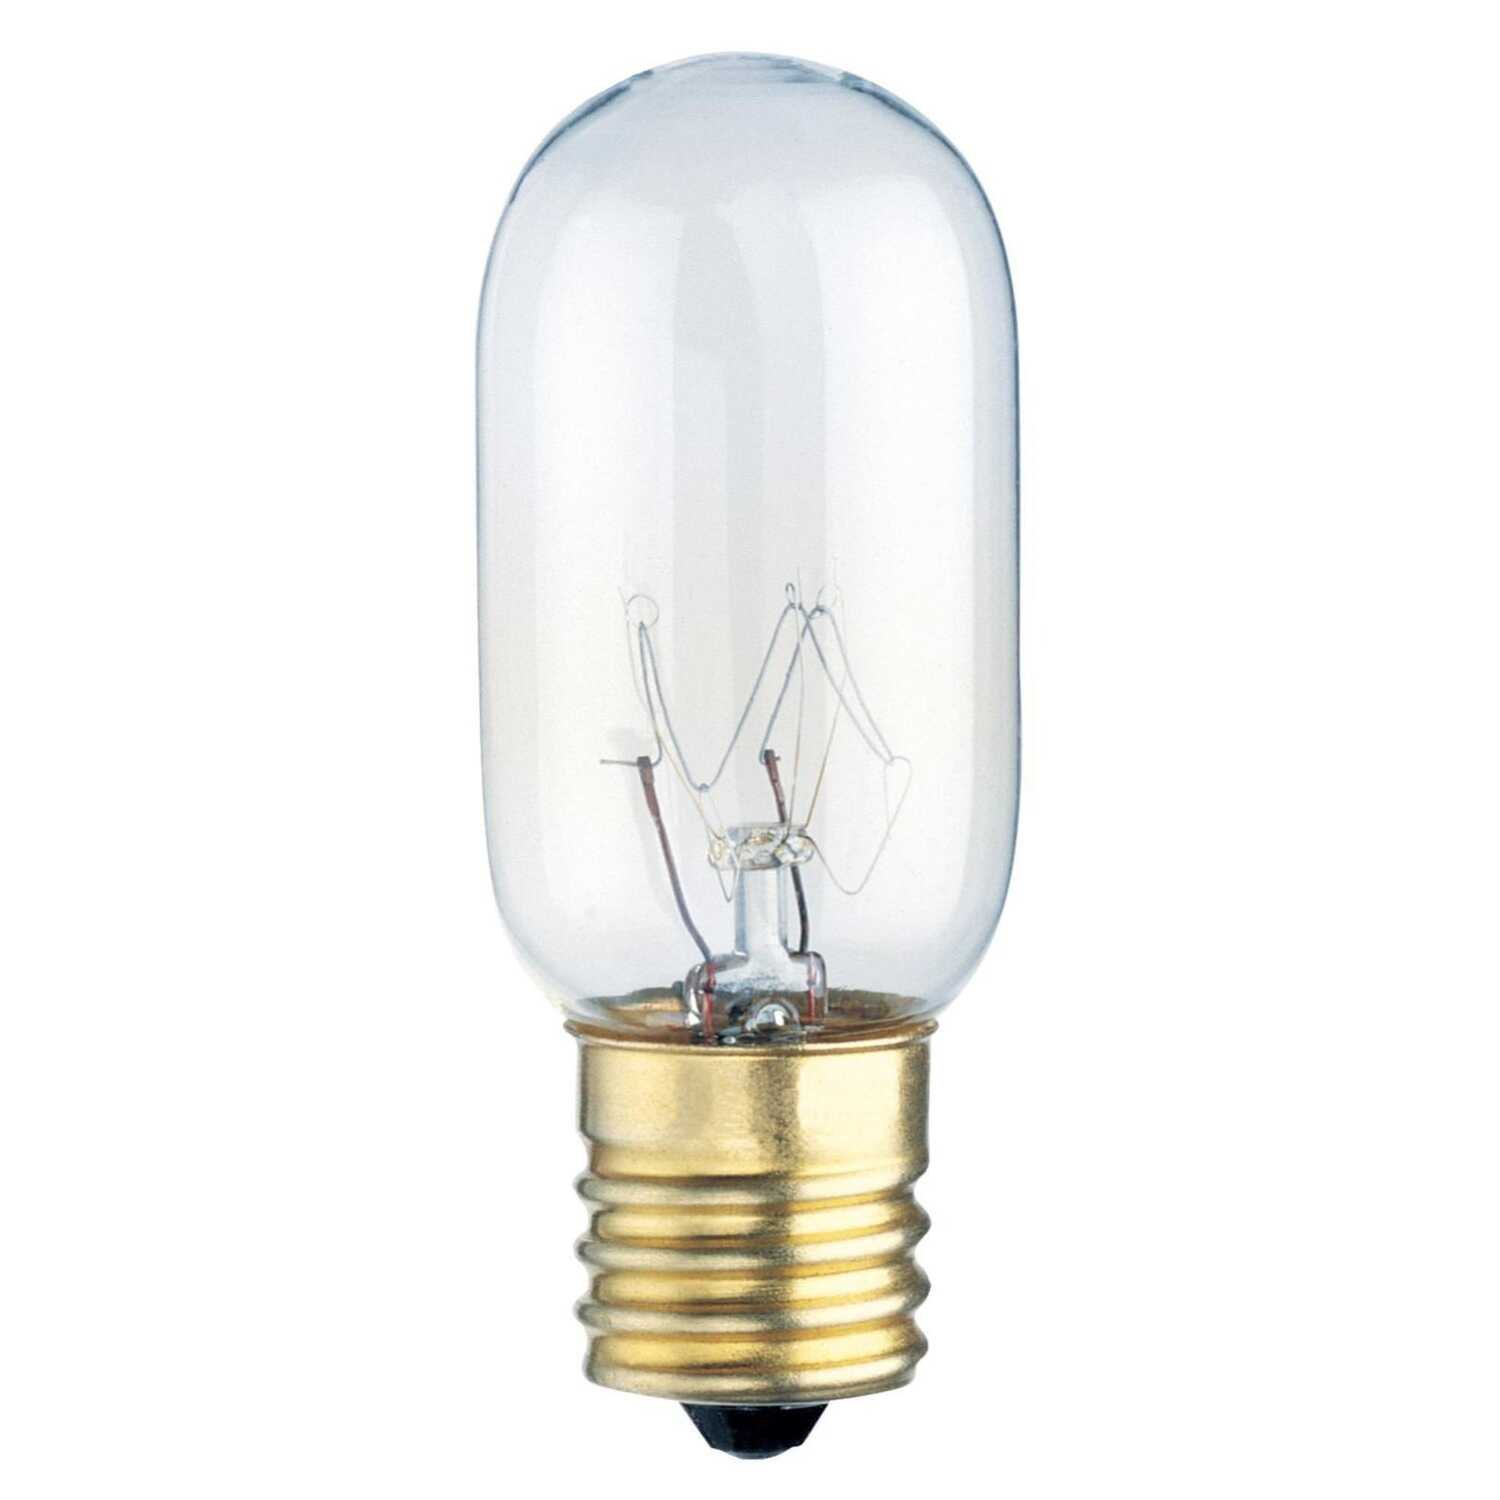 Westinghouse 40 Watts T8 Speciality Incandescent Bulb E17